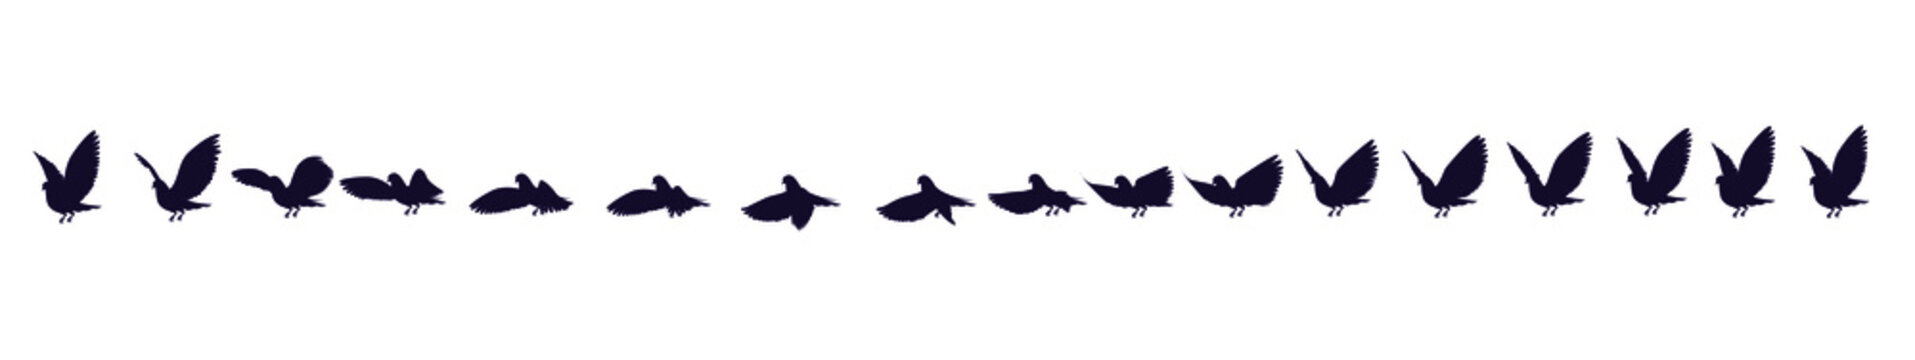 Full cycle animation of the black and white silhouette of a pigeon. Sprites for 2d animation.